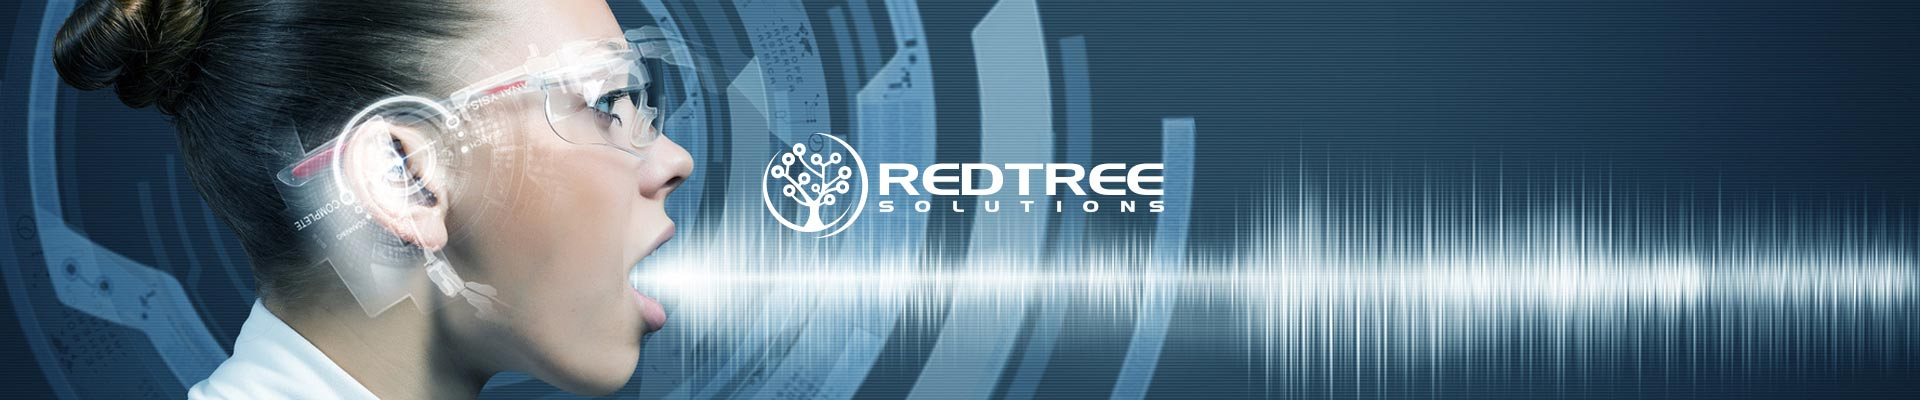 s-redtree-voice-recognition